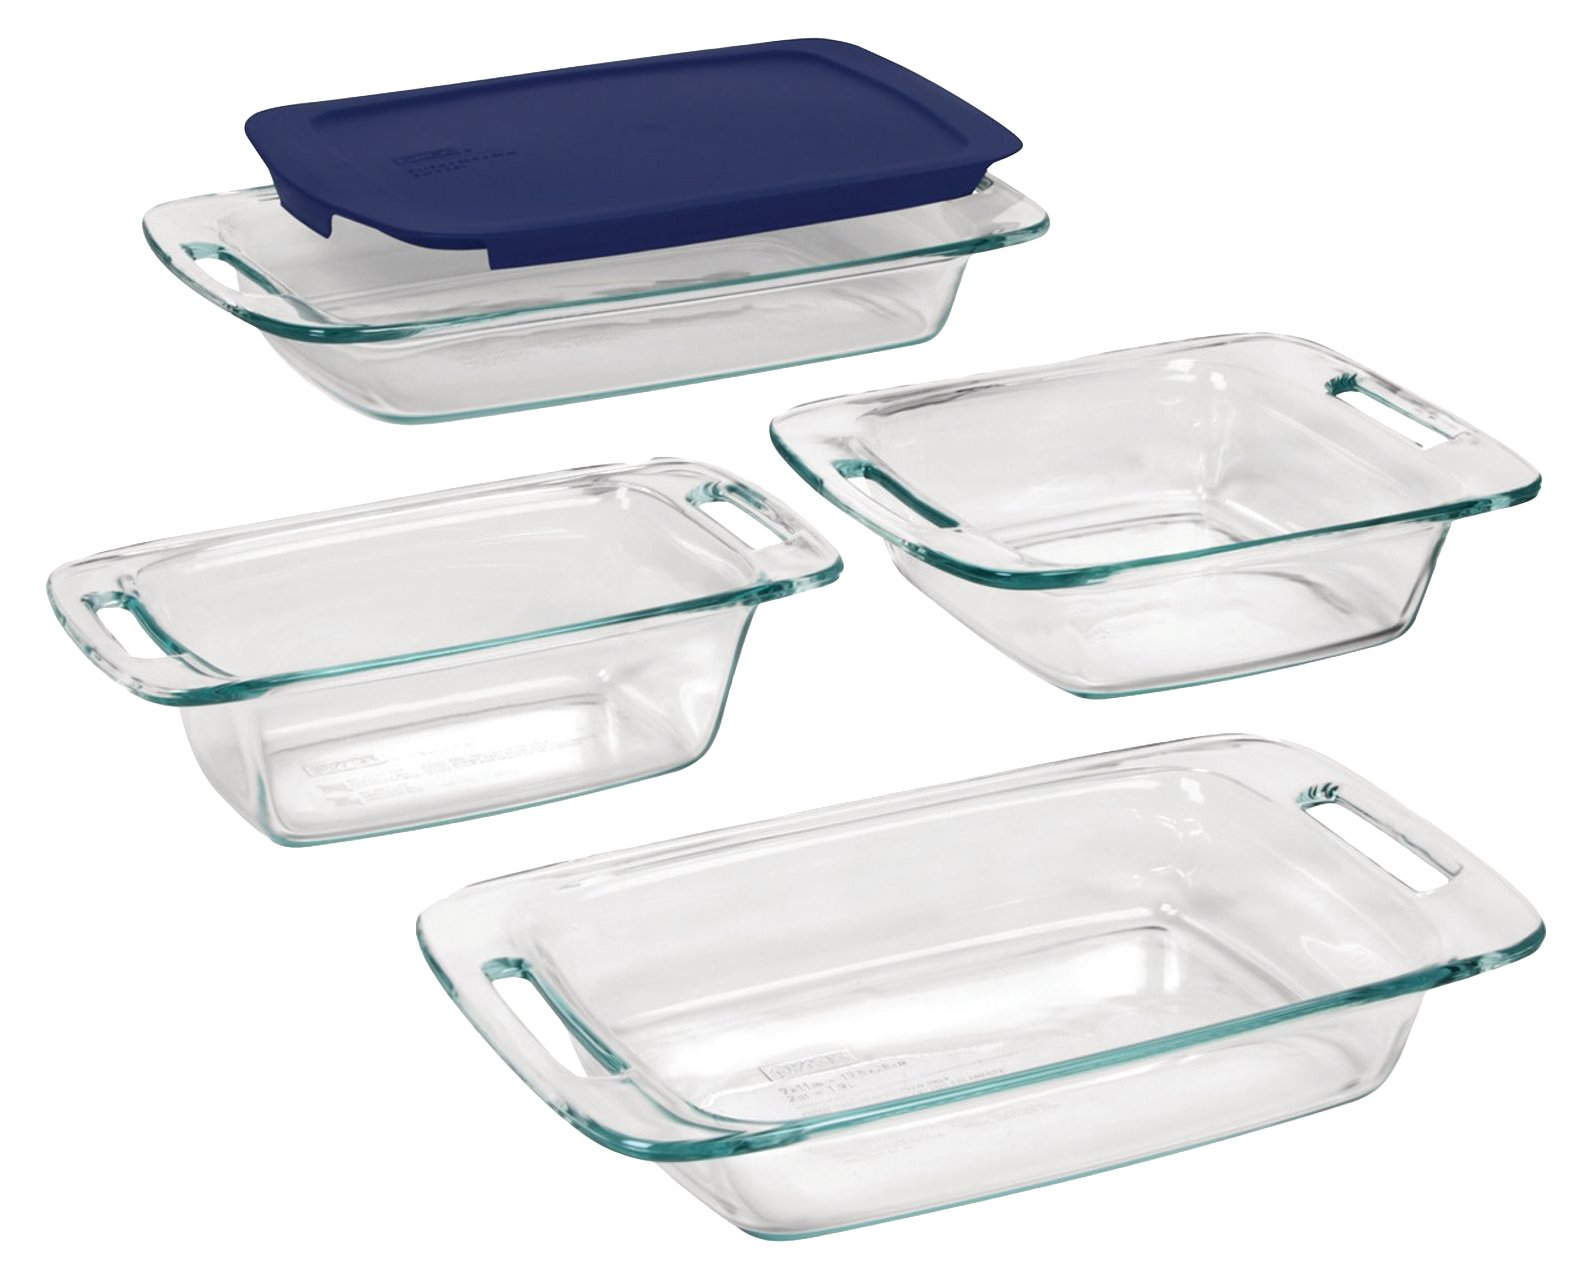 Pyrex Easy Grab Glass Bakeware Set (5-piece) by Pyrex